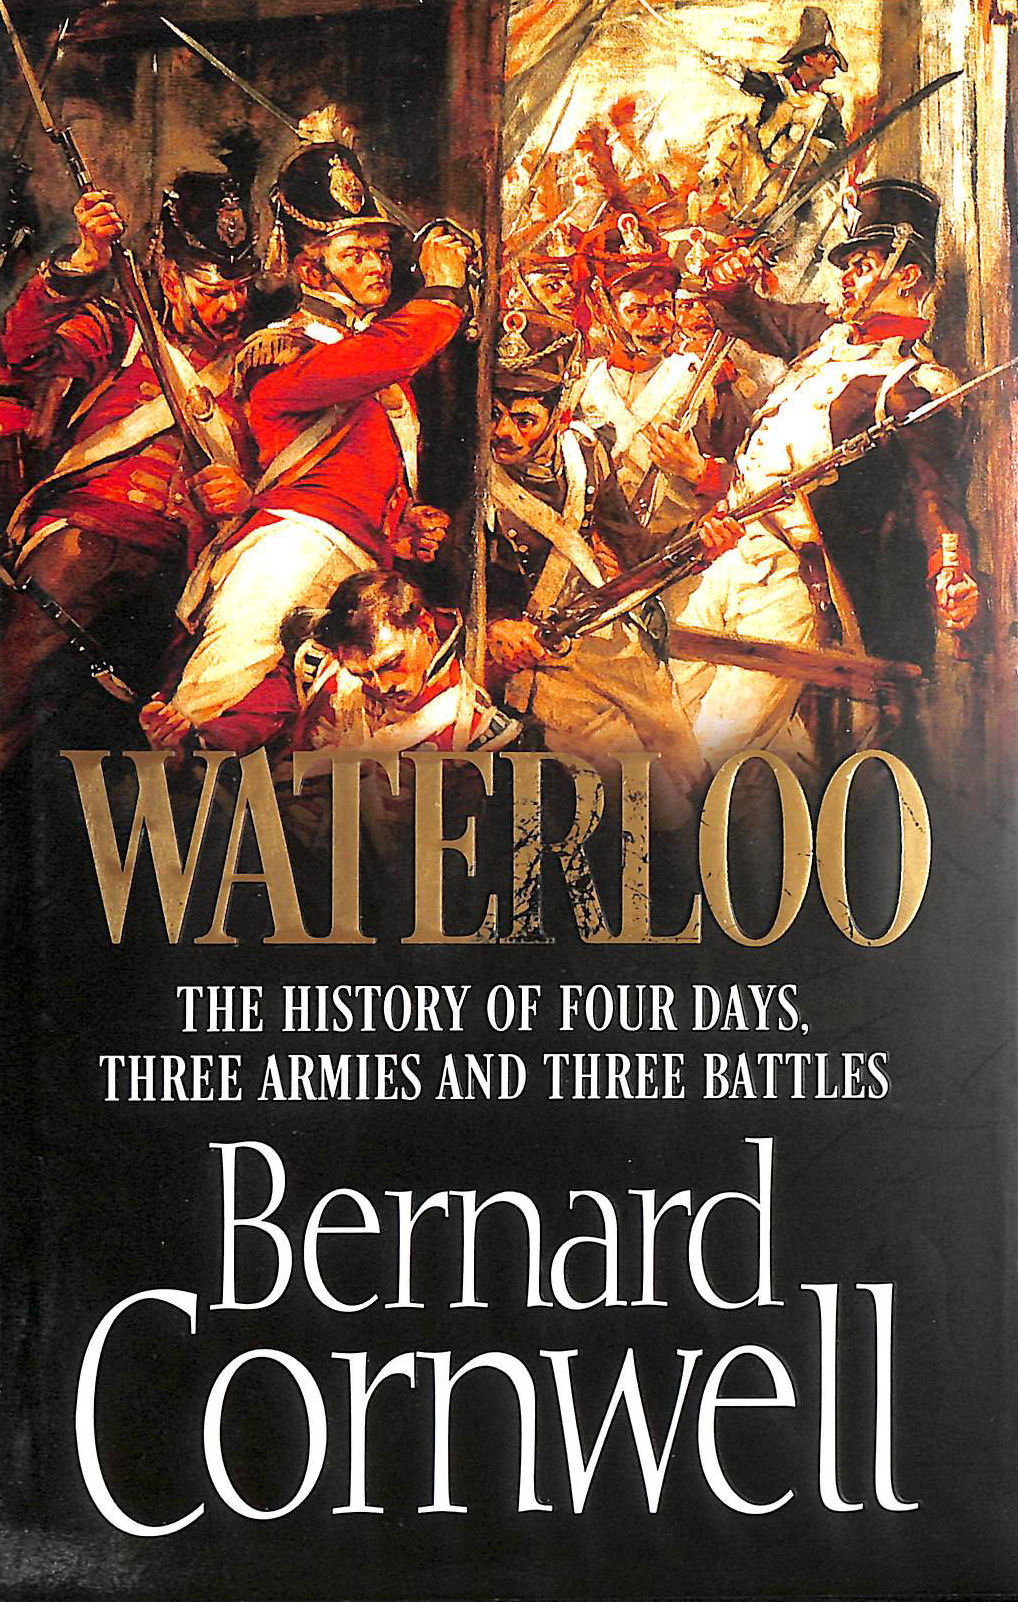 Image for Waterloo: The History of Four Days, Three Armies and Three Battles